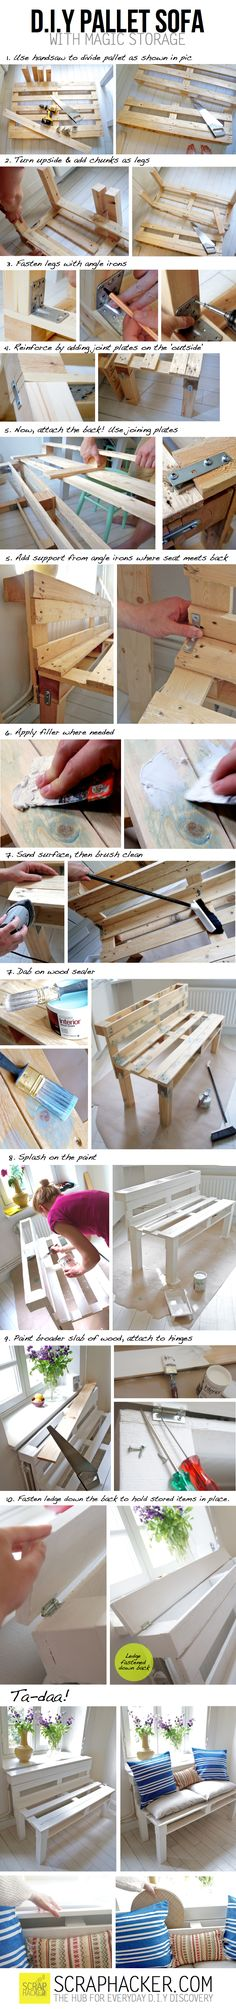 DIY Pallet Sofa Tutorial - Easy 10-Step DIY guide! What a wonderful step by step pic...